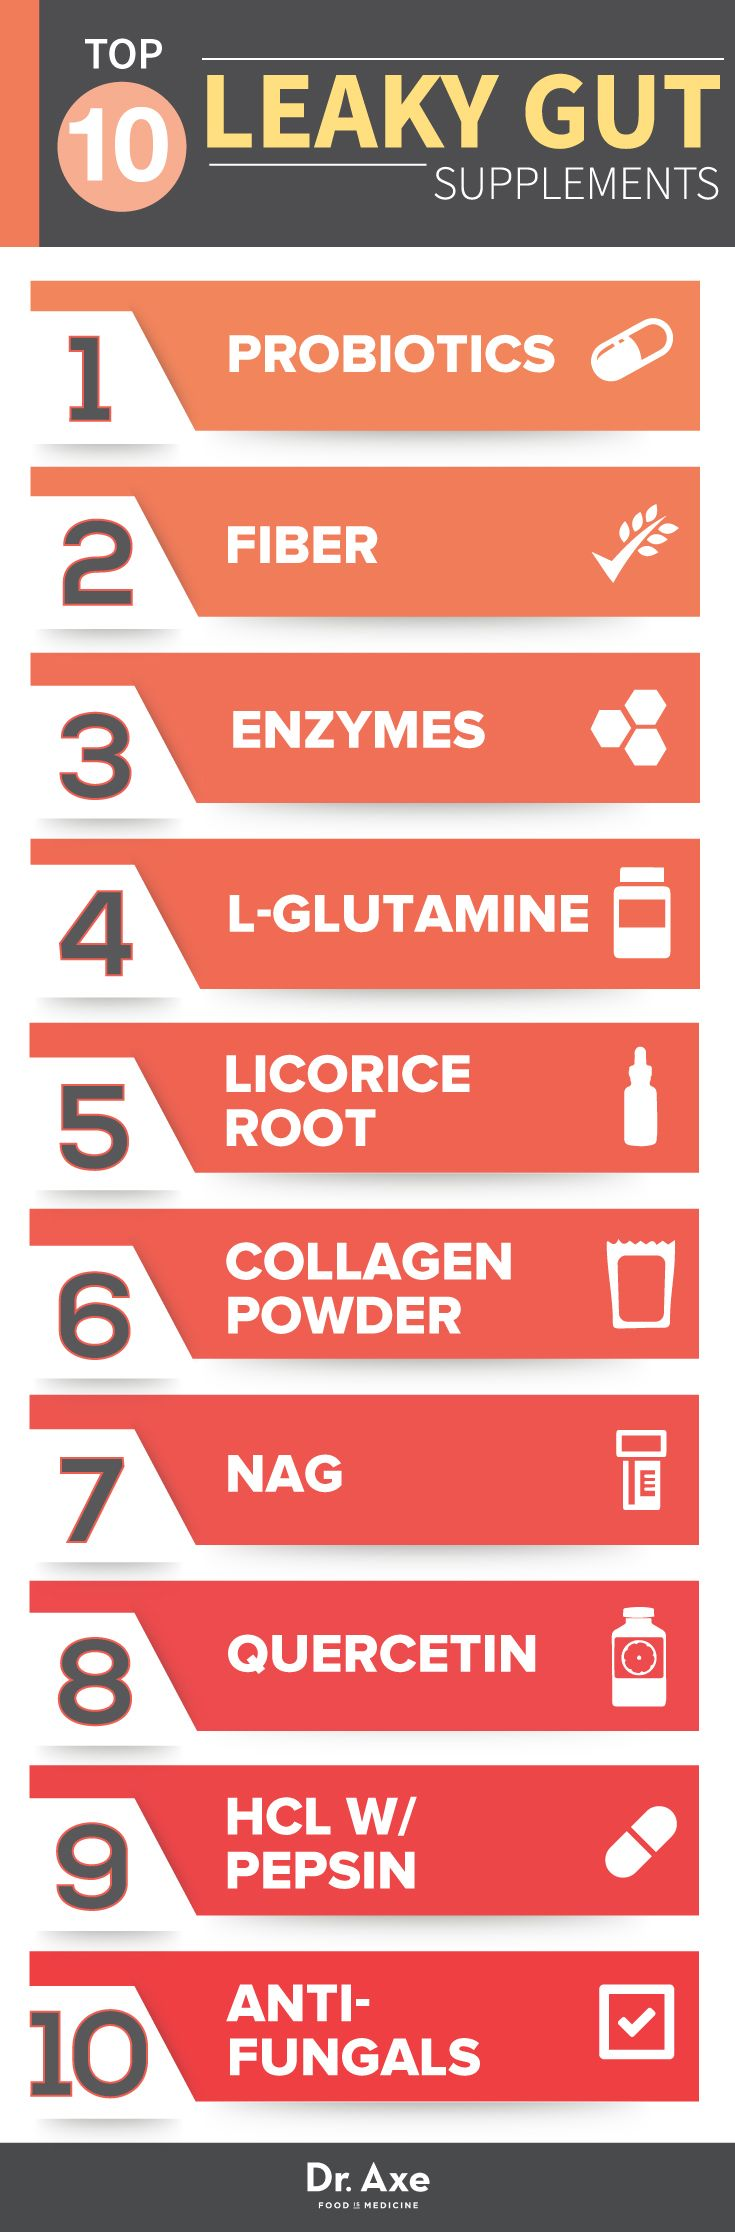 Top Leaky Gut Supplements http://www.draxe.com #health #holistic #natural